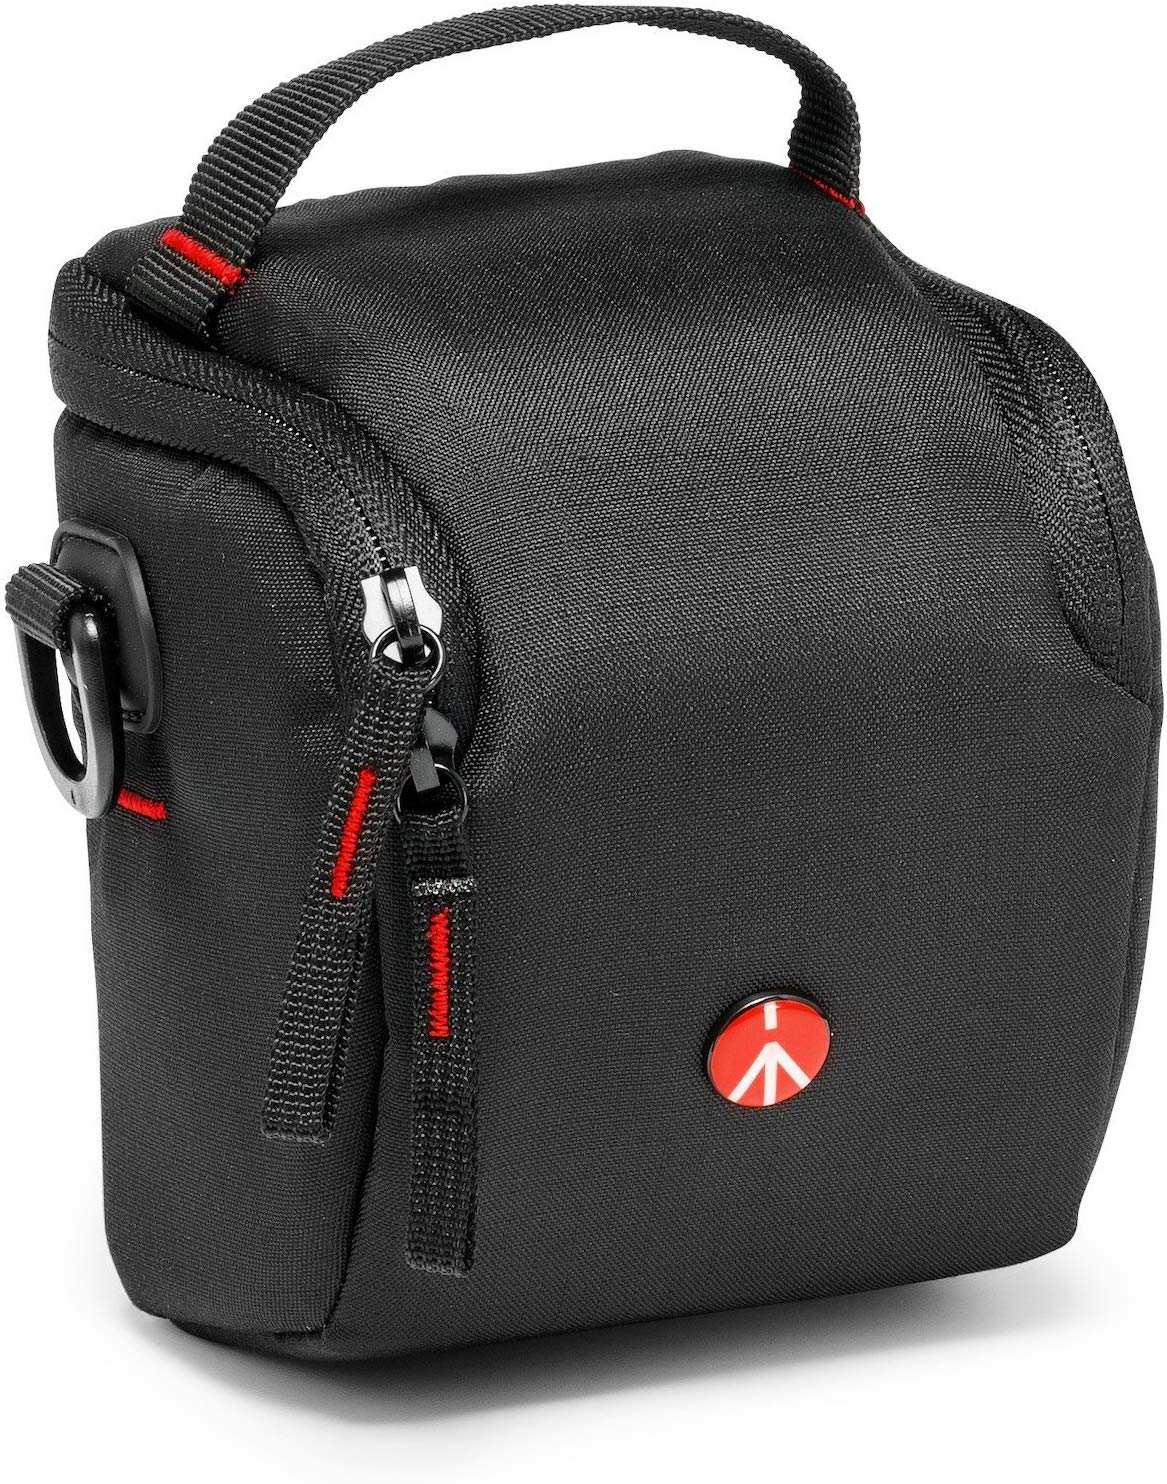 Manfrotto Holster Bag for Camera – Black